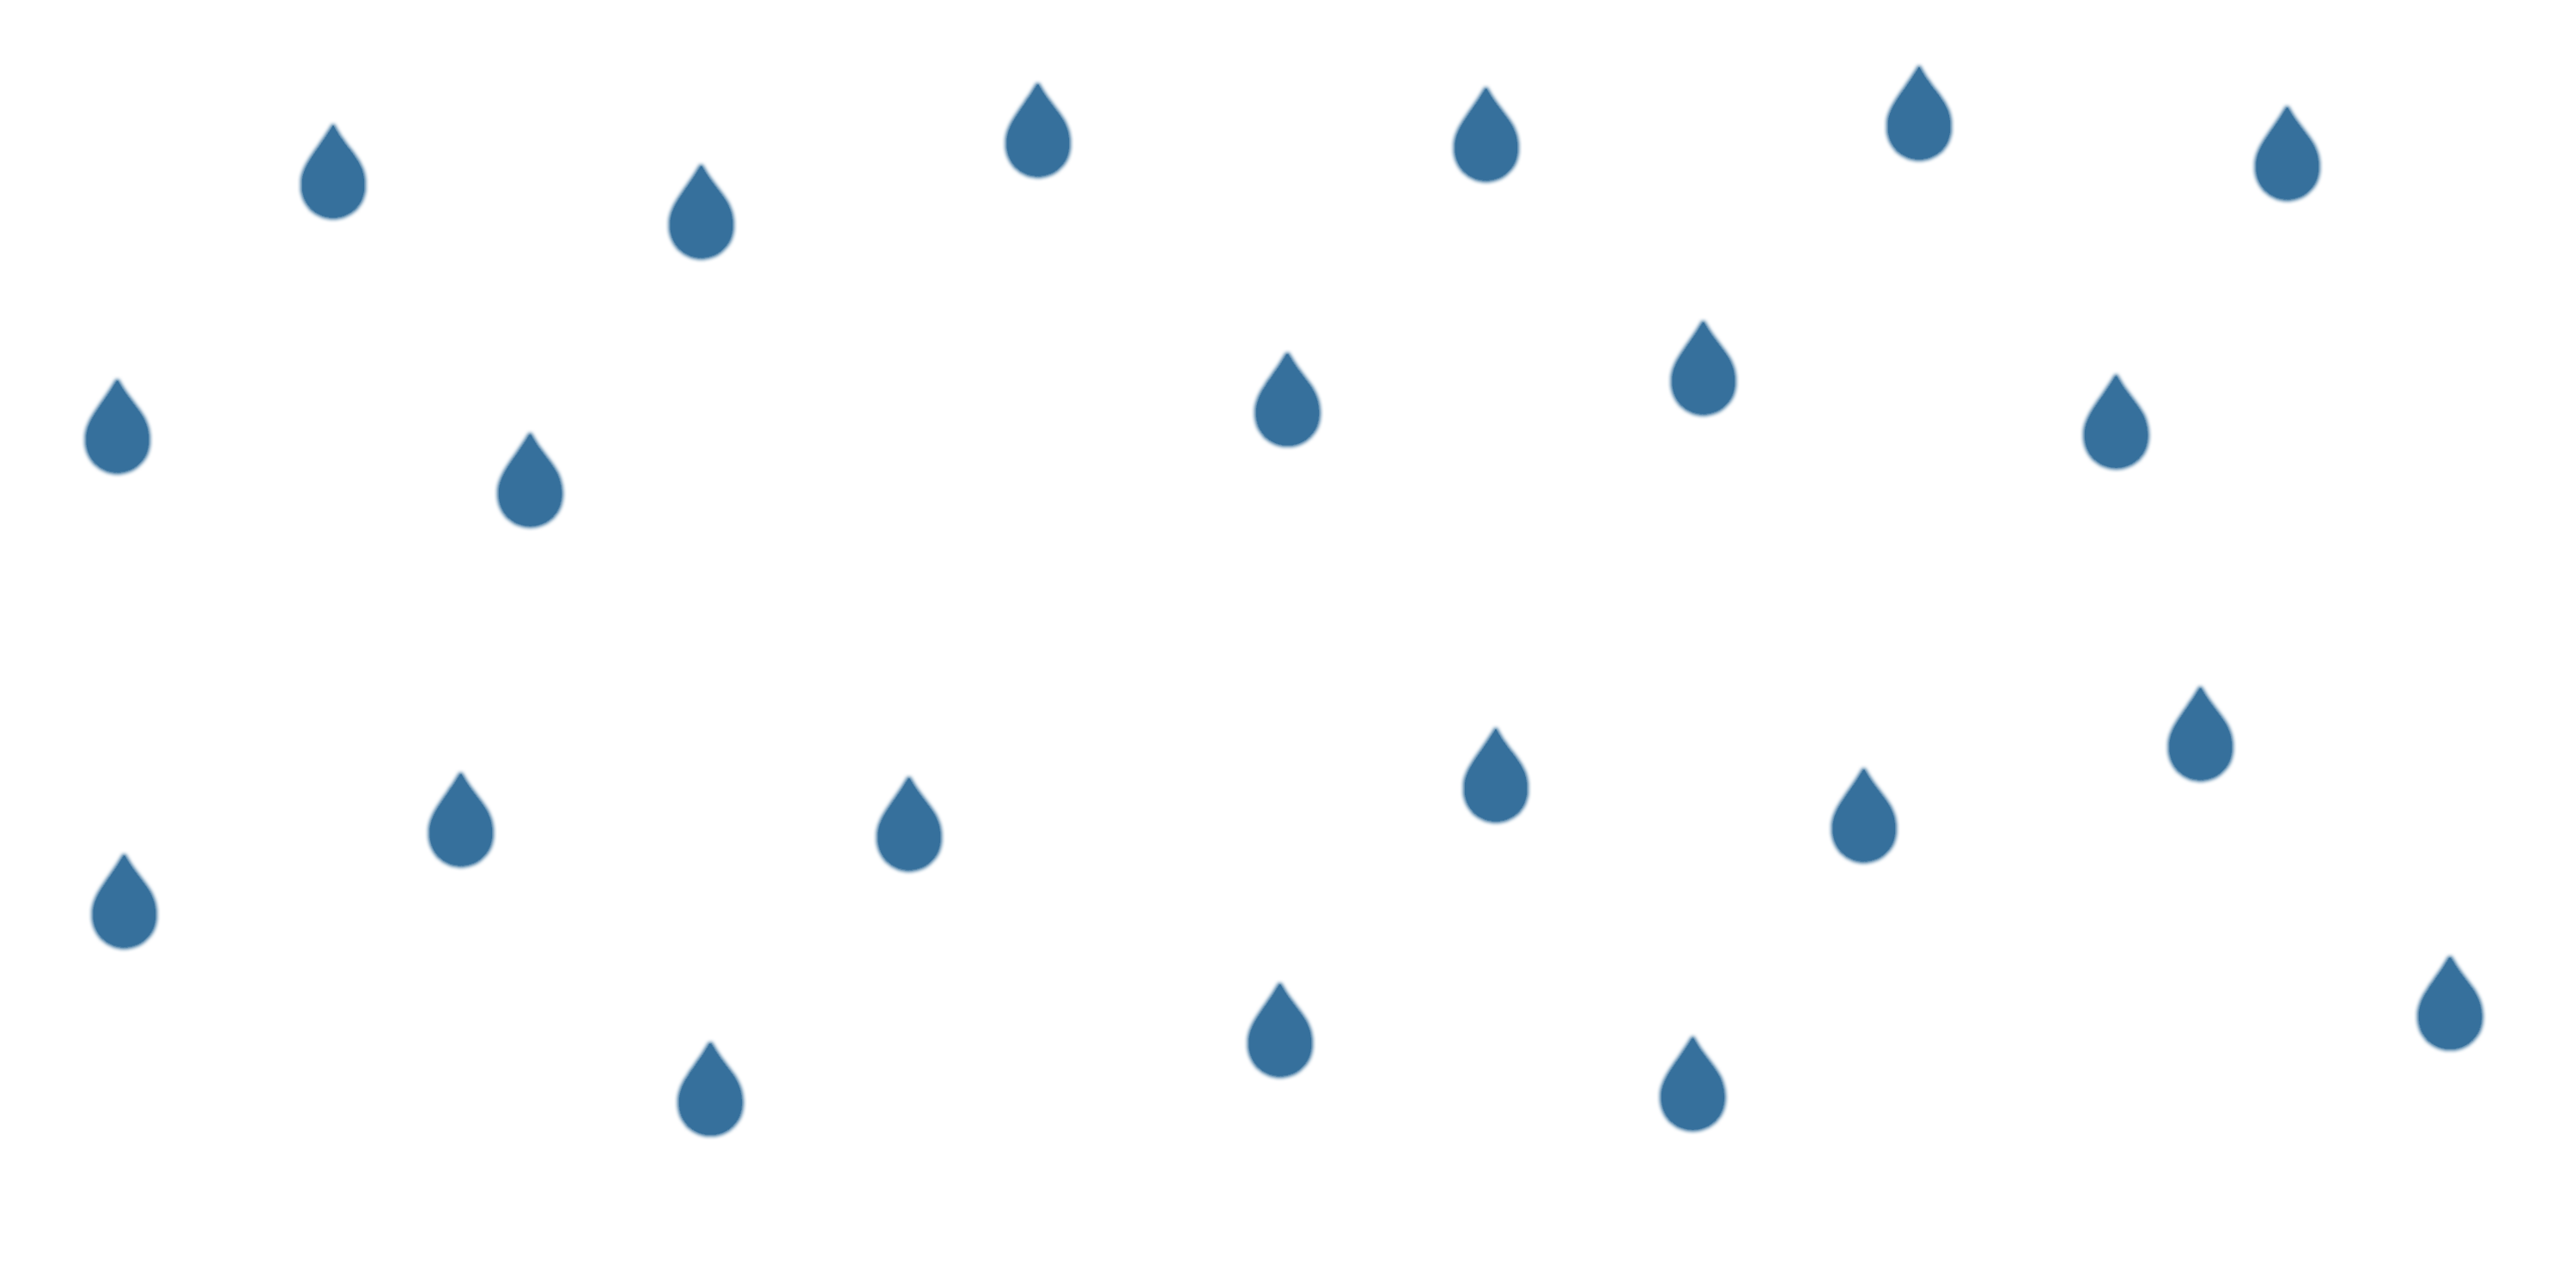 Drip water png. Drips music producer sound